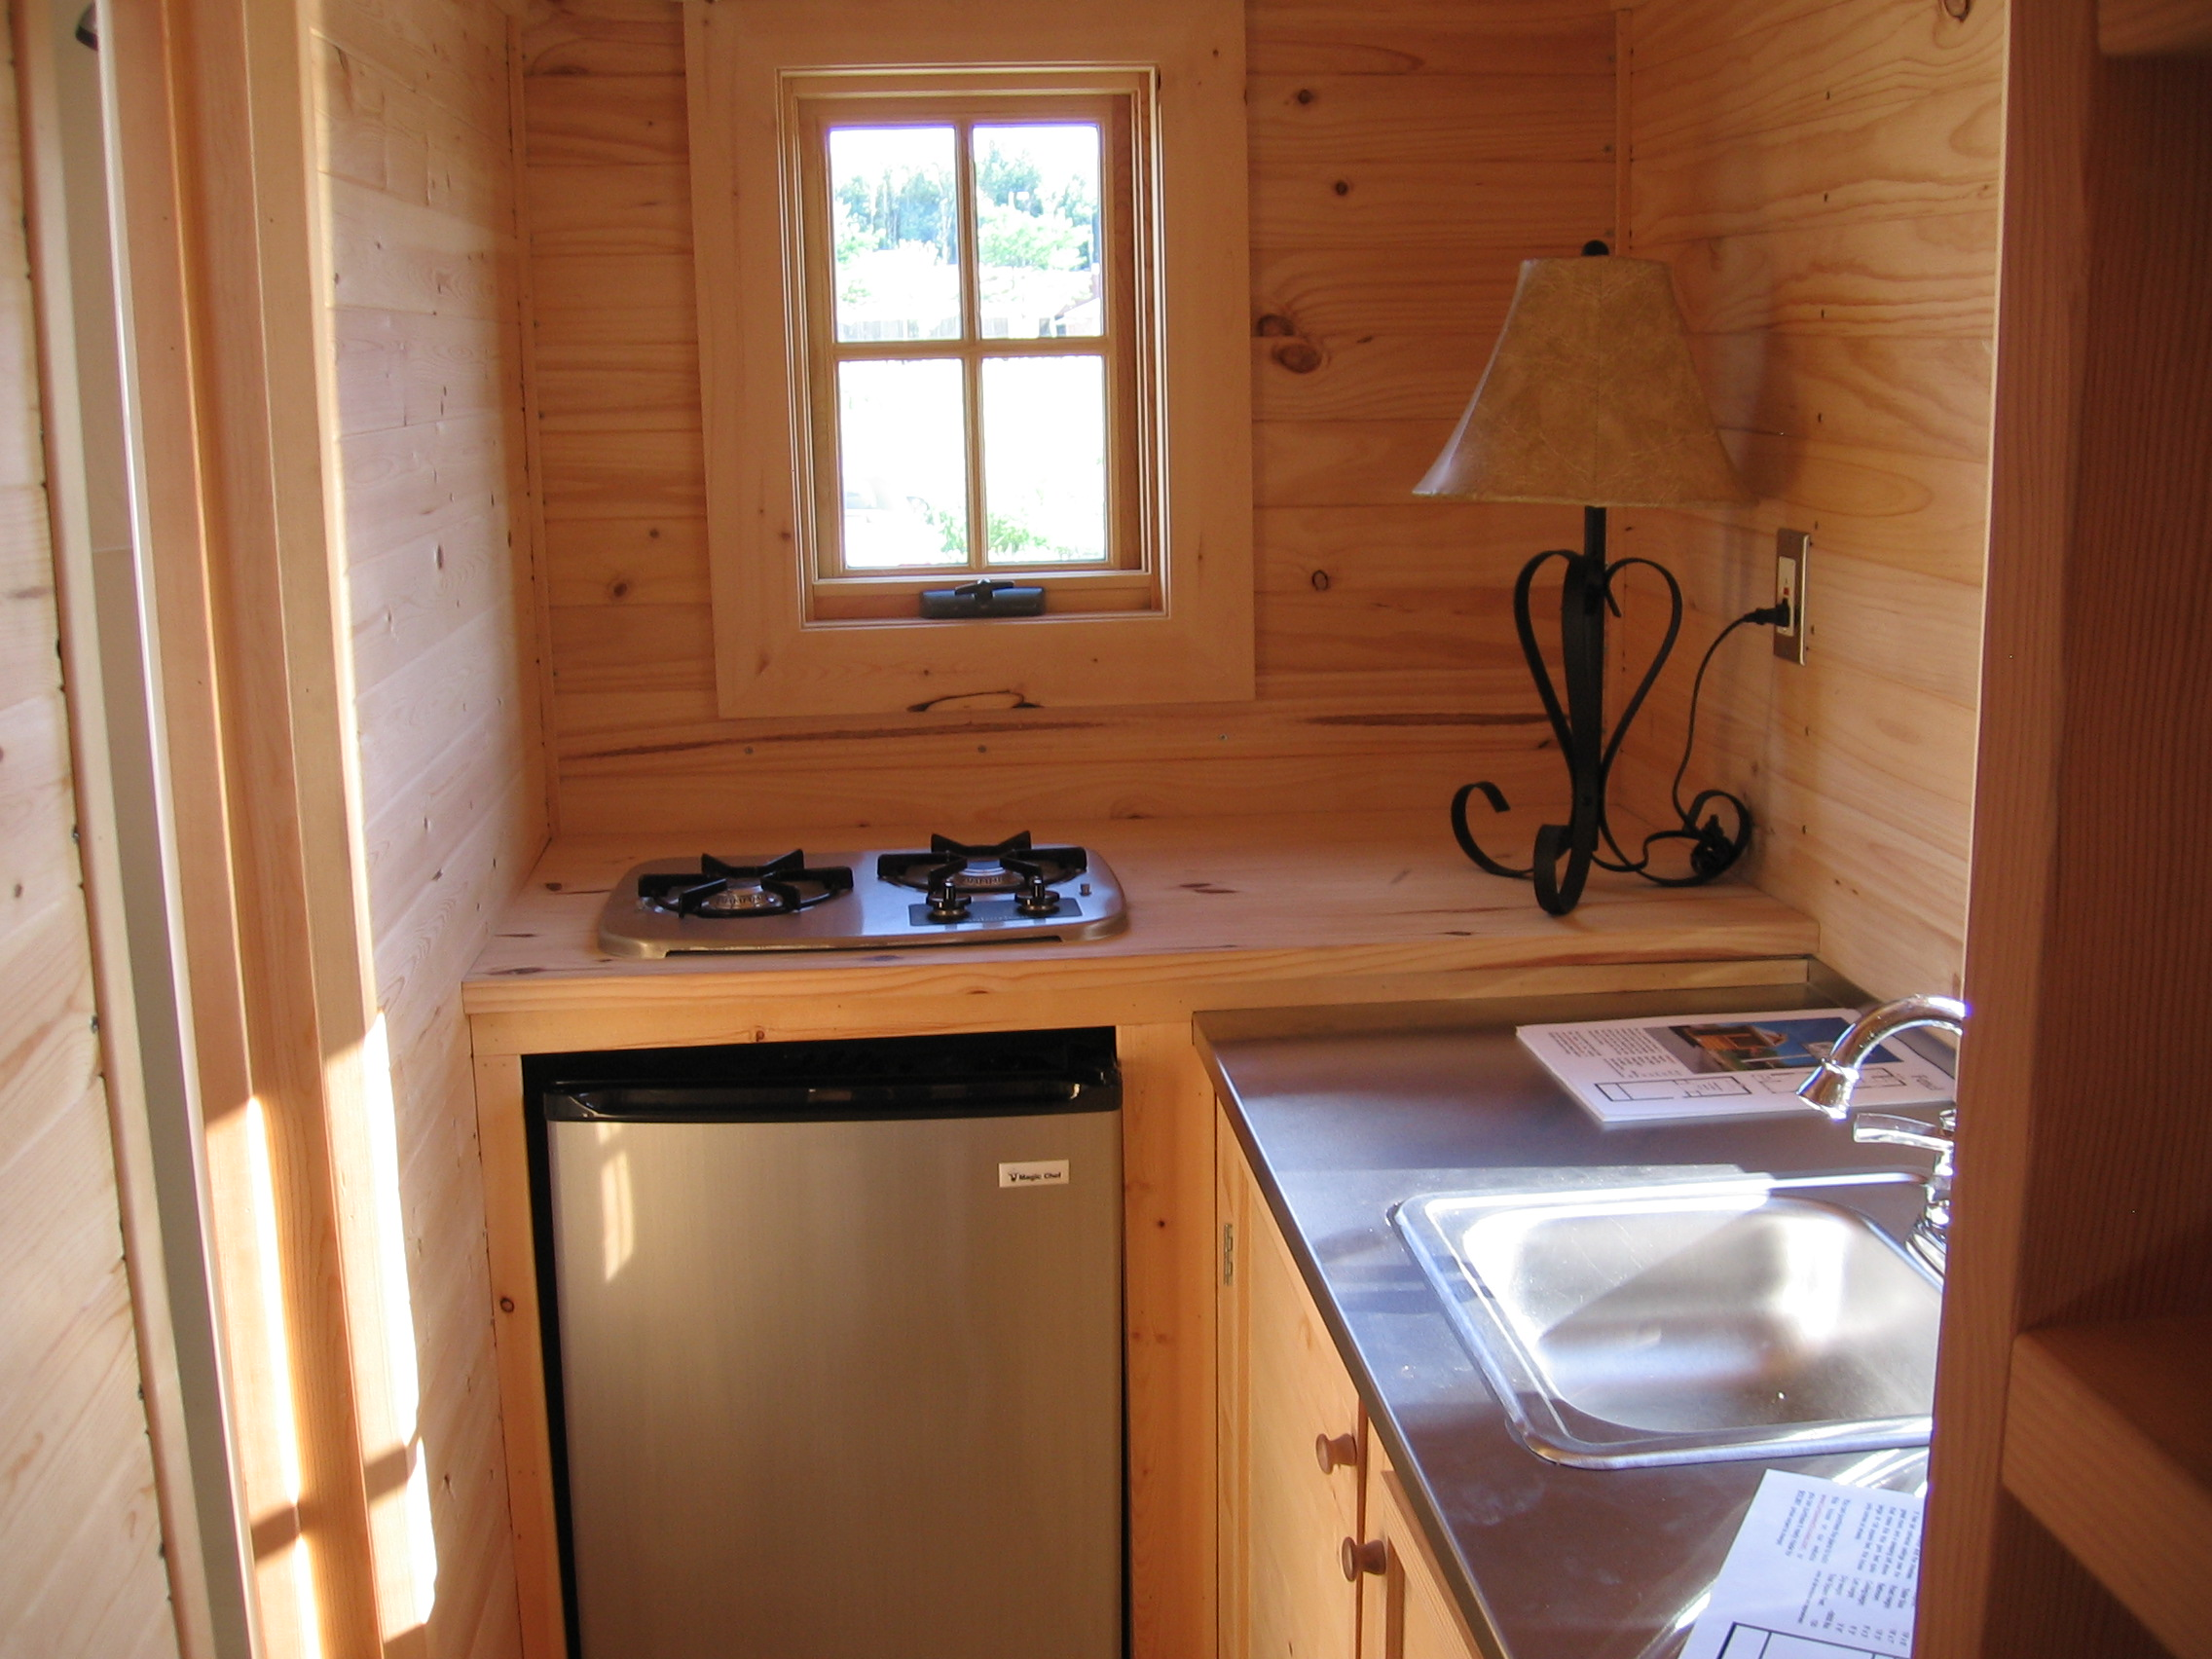 House Kitchen Similiar Tiny House Kitchen Sink Keywords